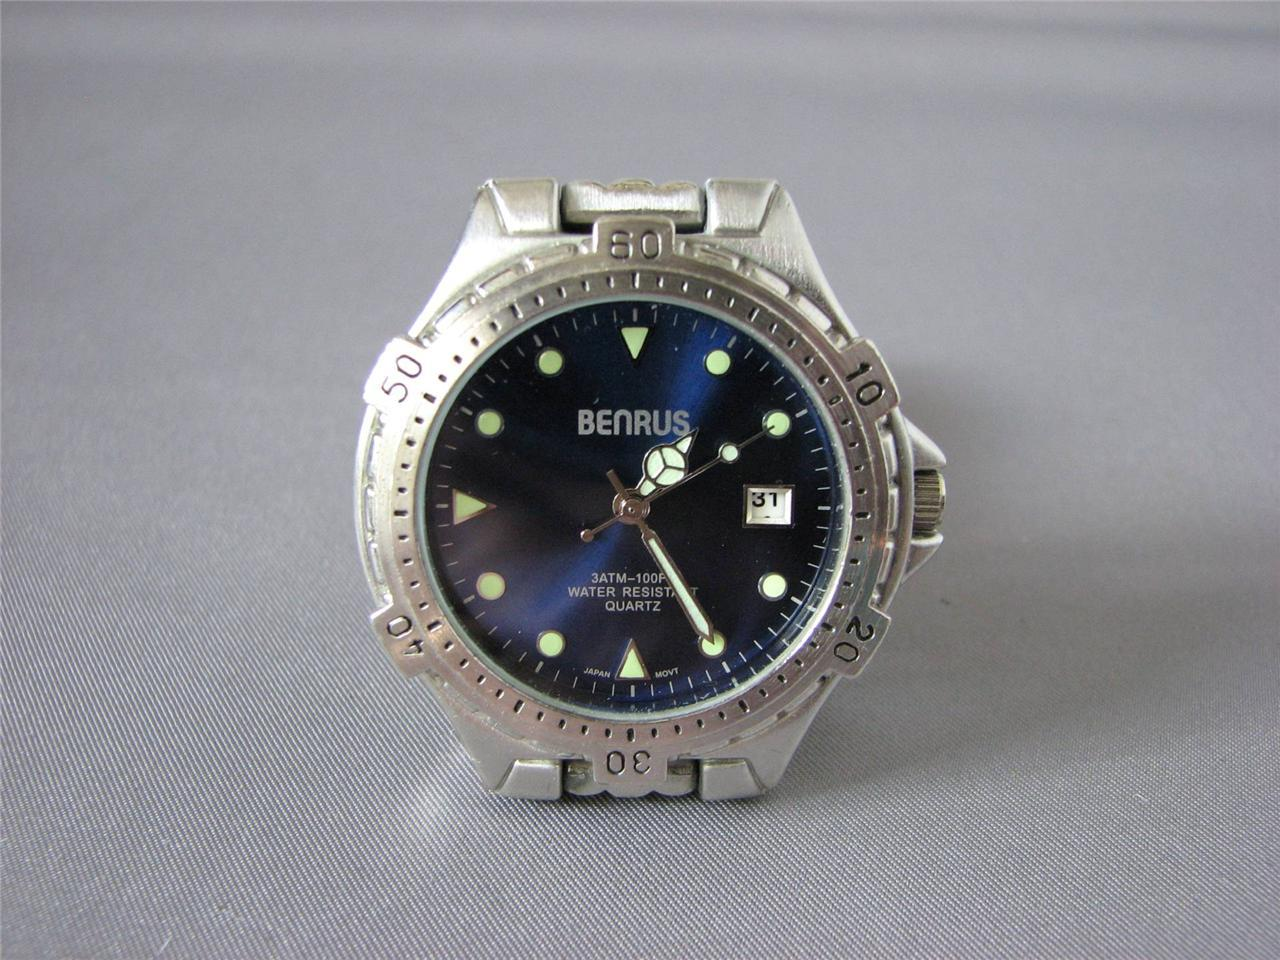 Benrus Wrist Watch Serial Numbers - loadtoronto